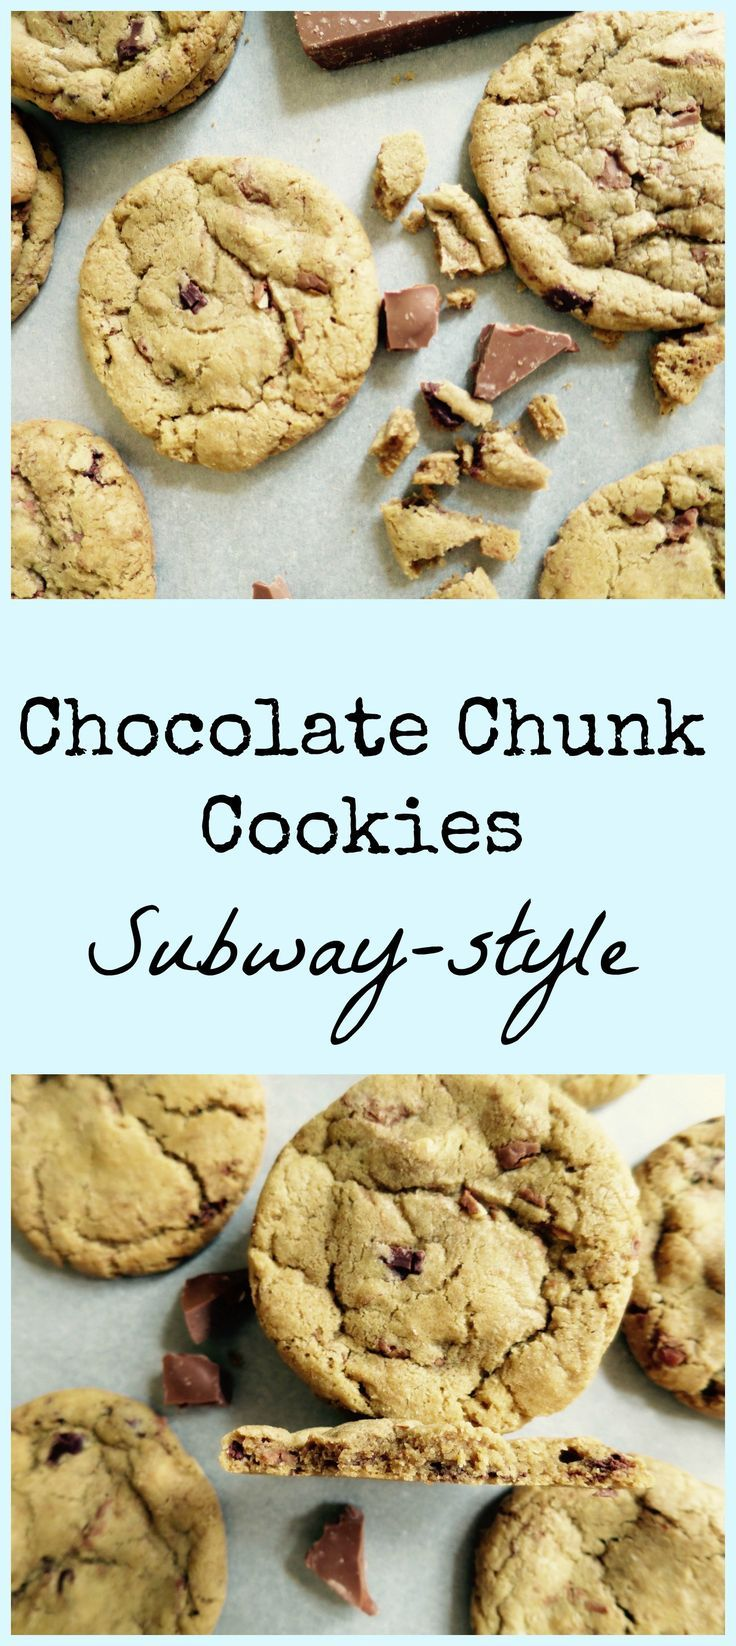 How To Make Chocolate Chunk Cookies That Taste Just Like Subway Cookies!